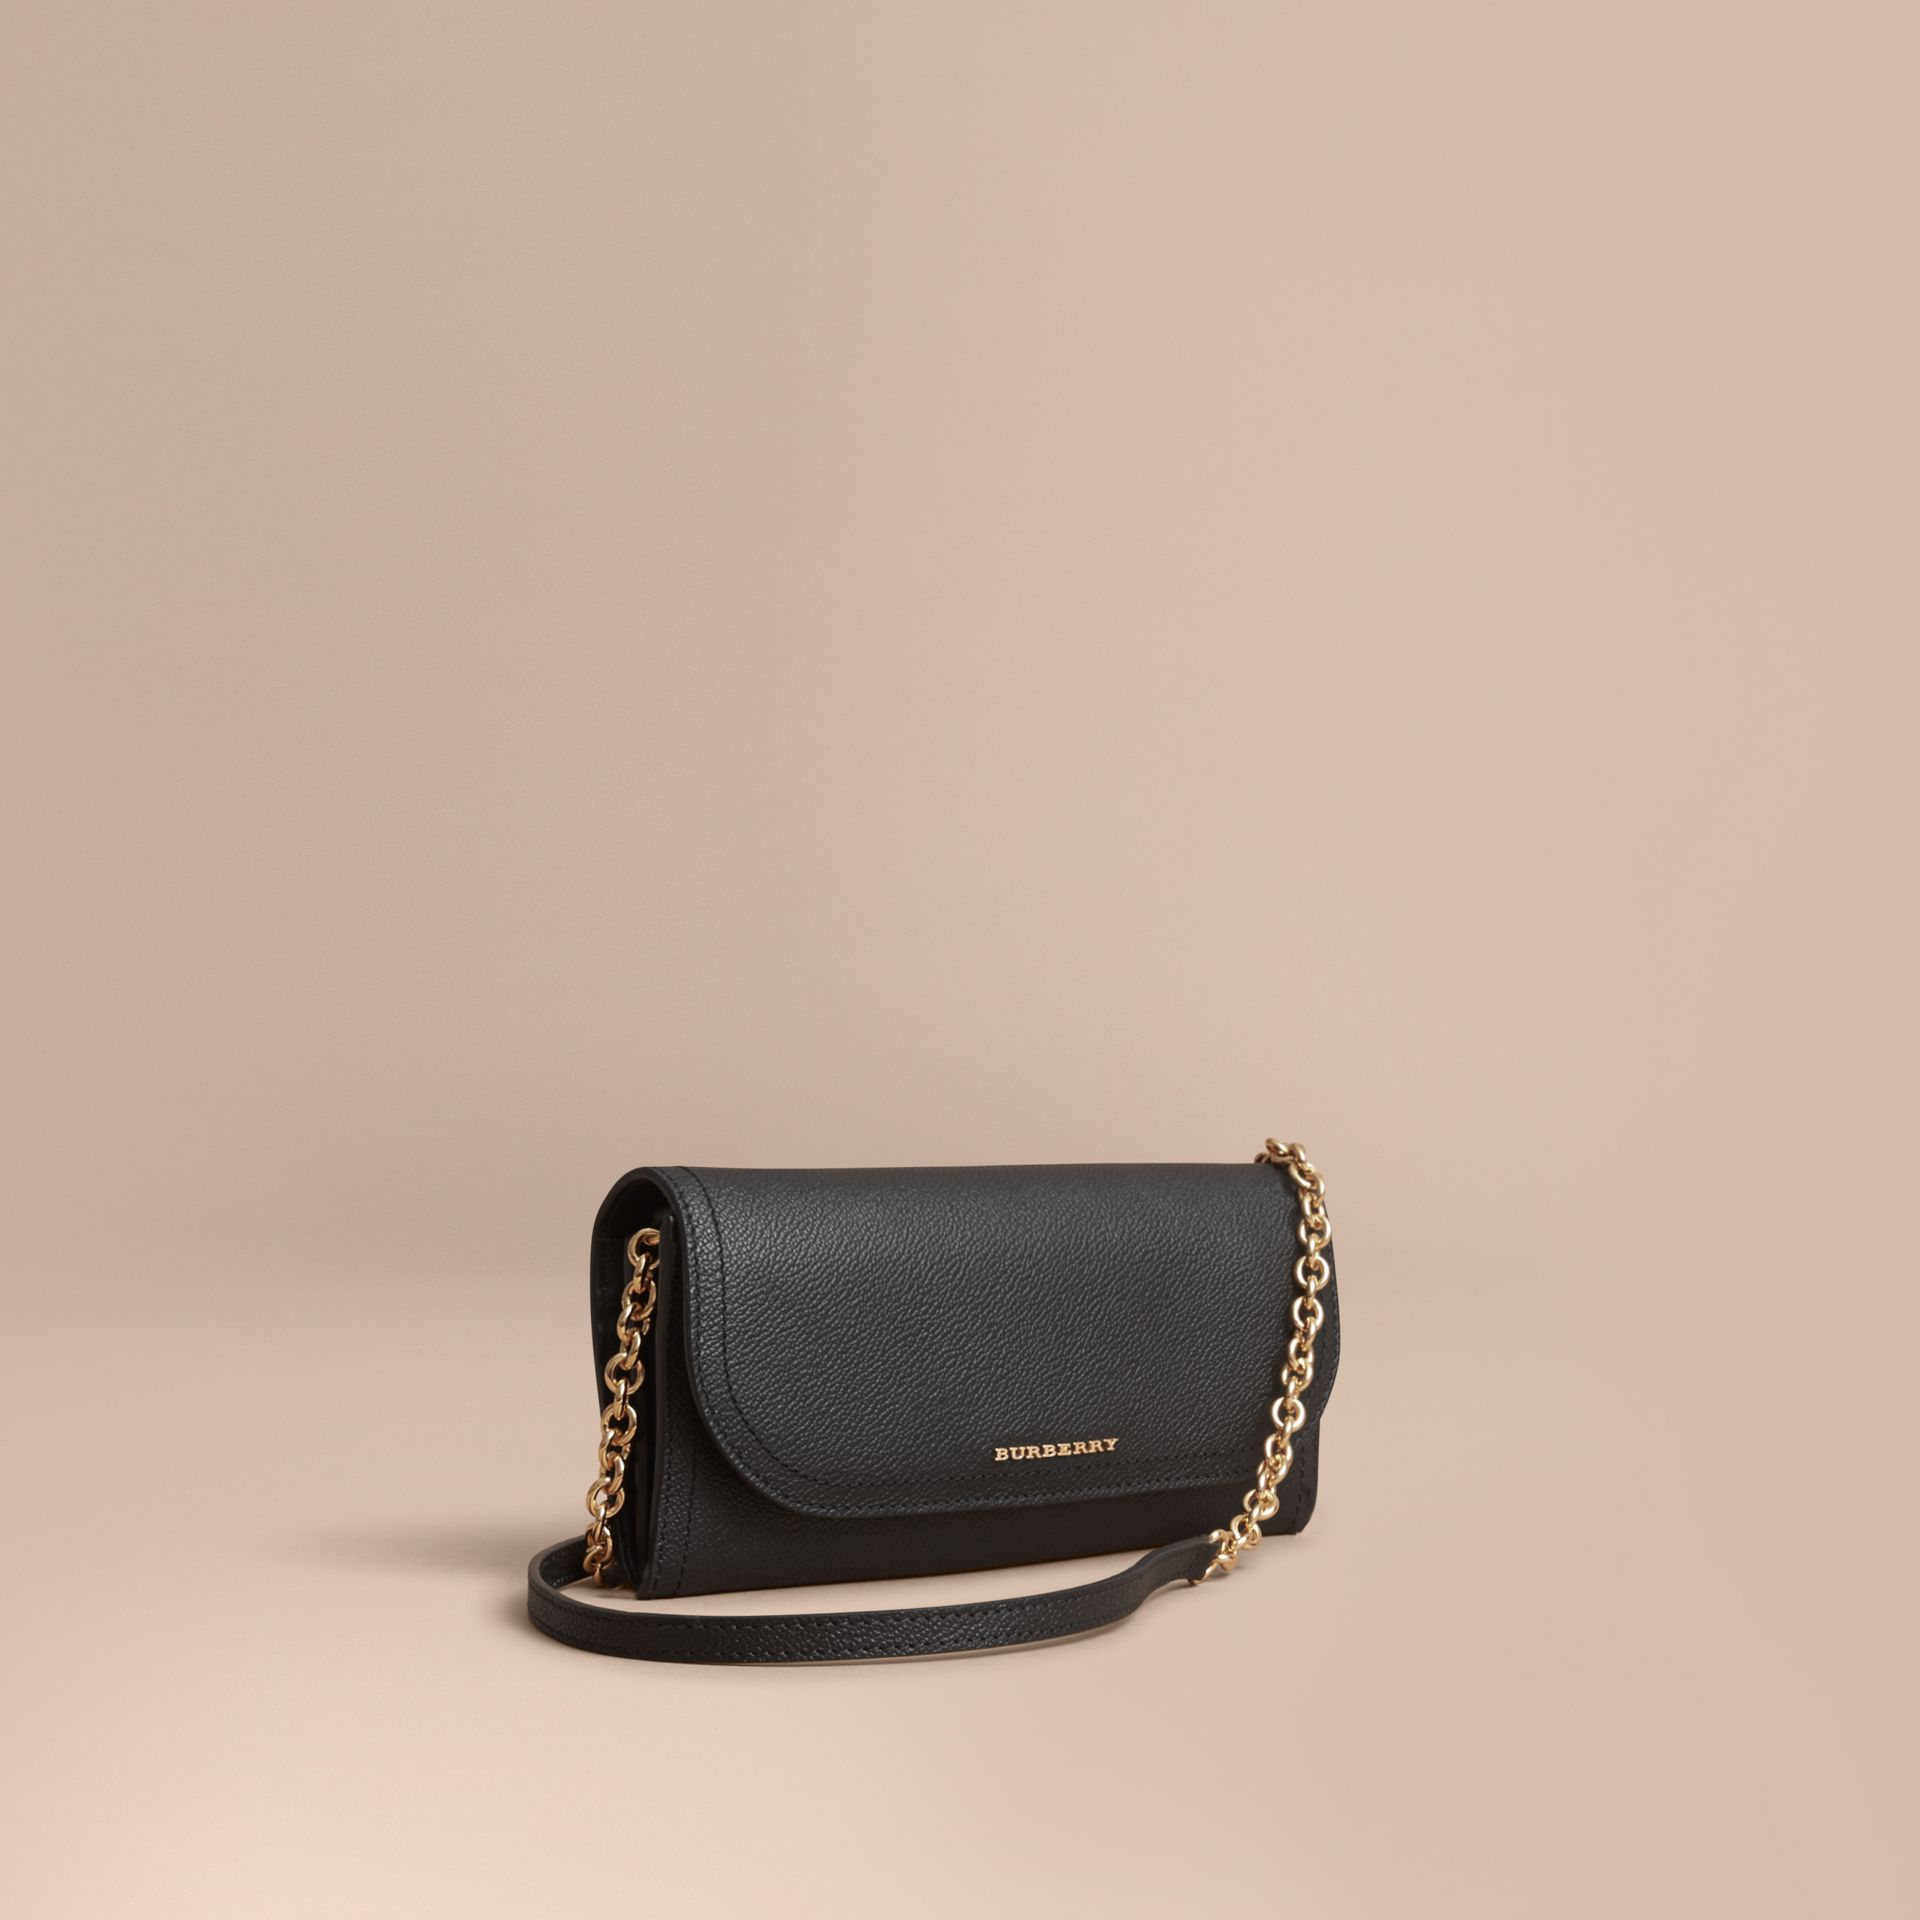 Leather Wallet with Chain in Black - Women | Burberry - gallery image 1